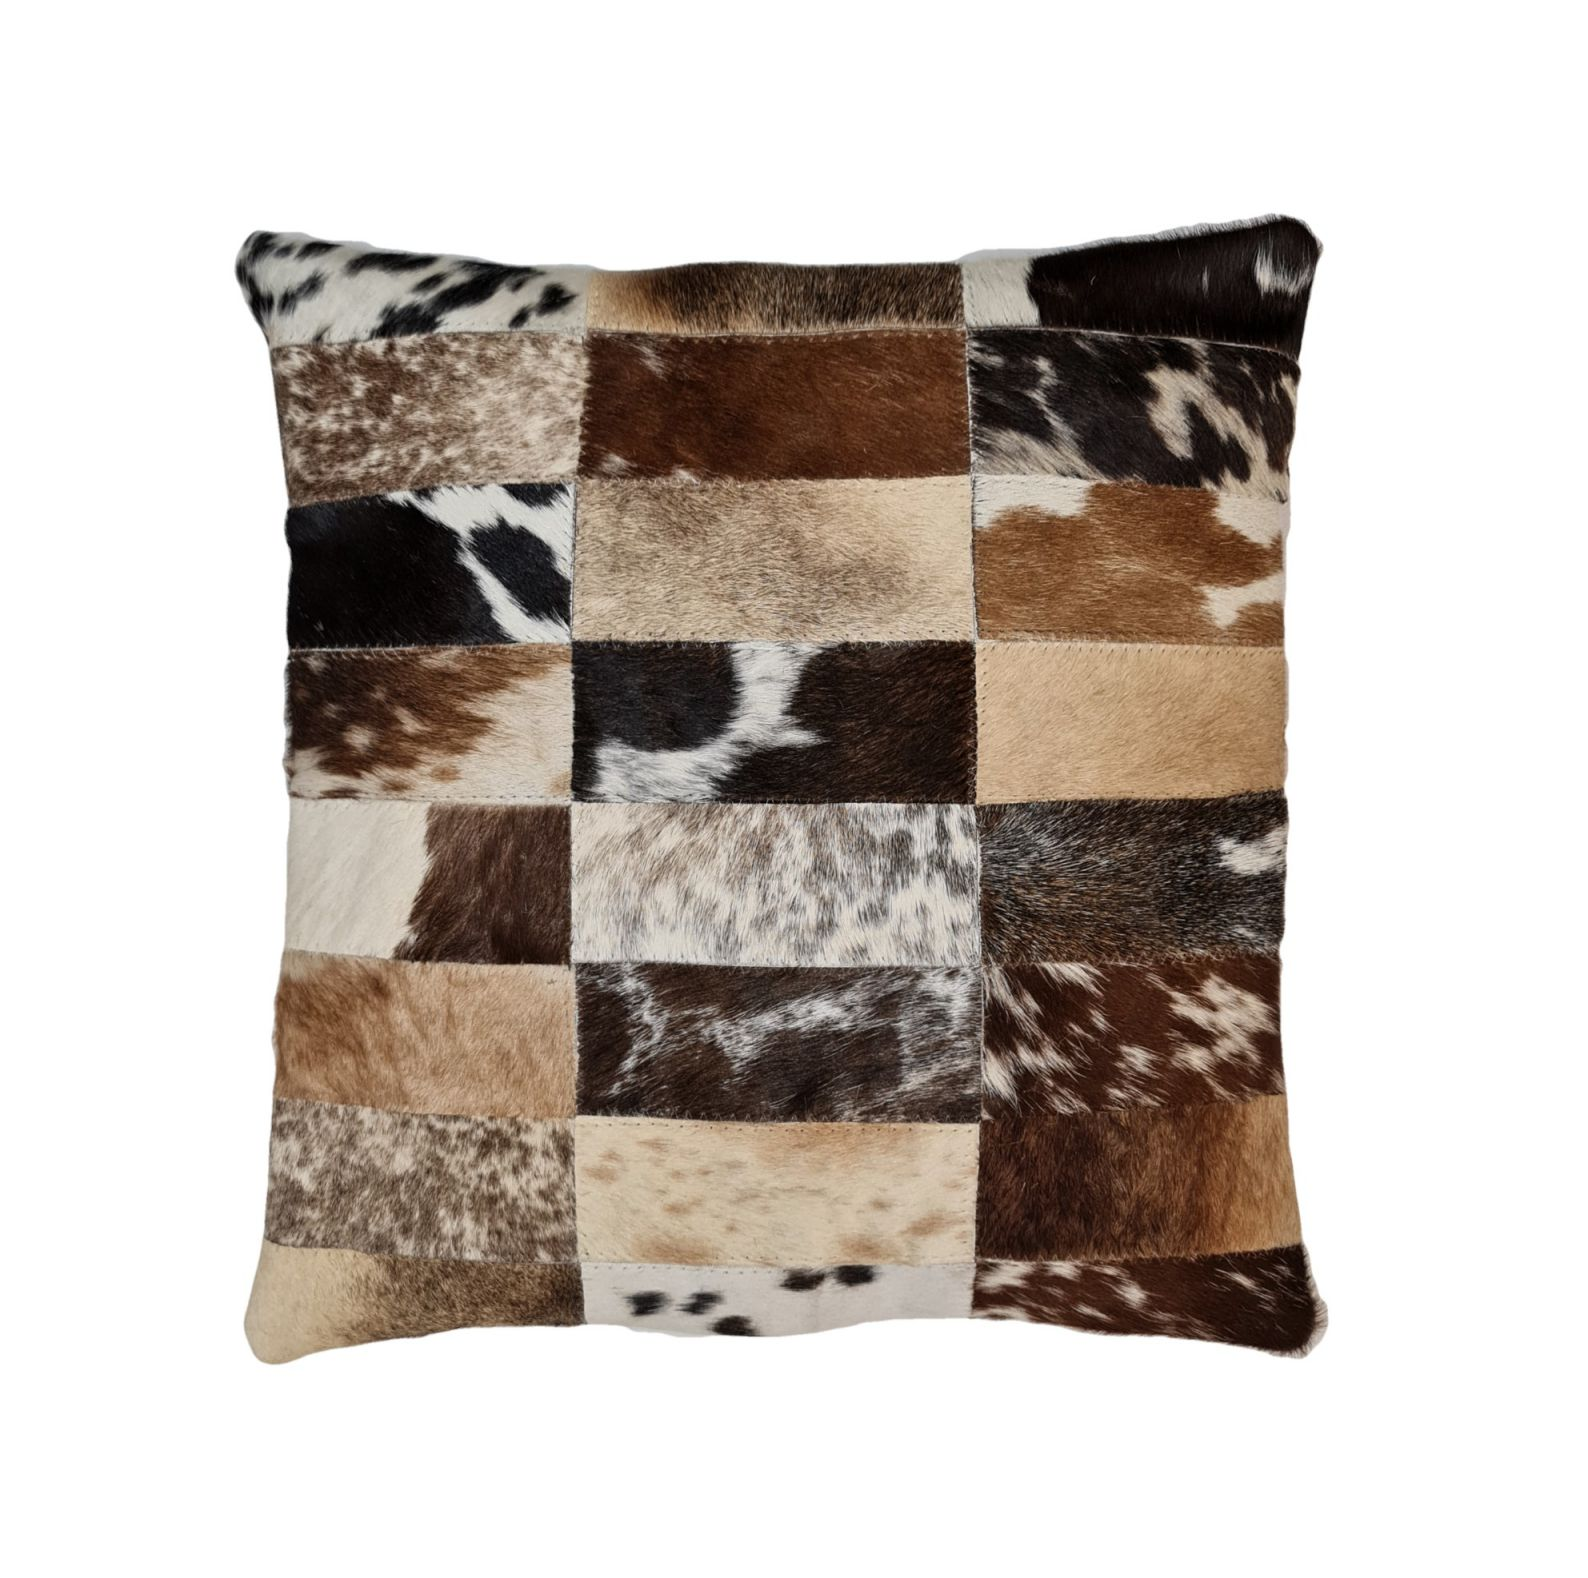 cowhide pillow cushion cover hair on hand crafted animal skin cover coussin de peau de vache oreiller